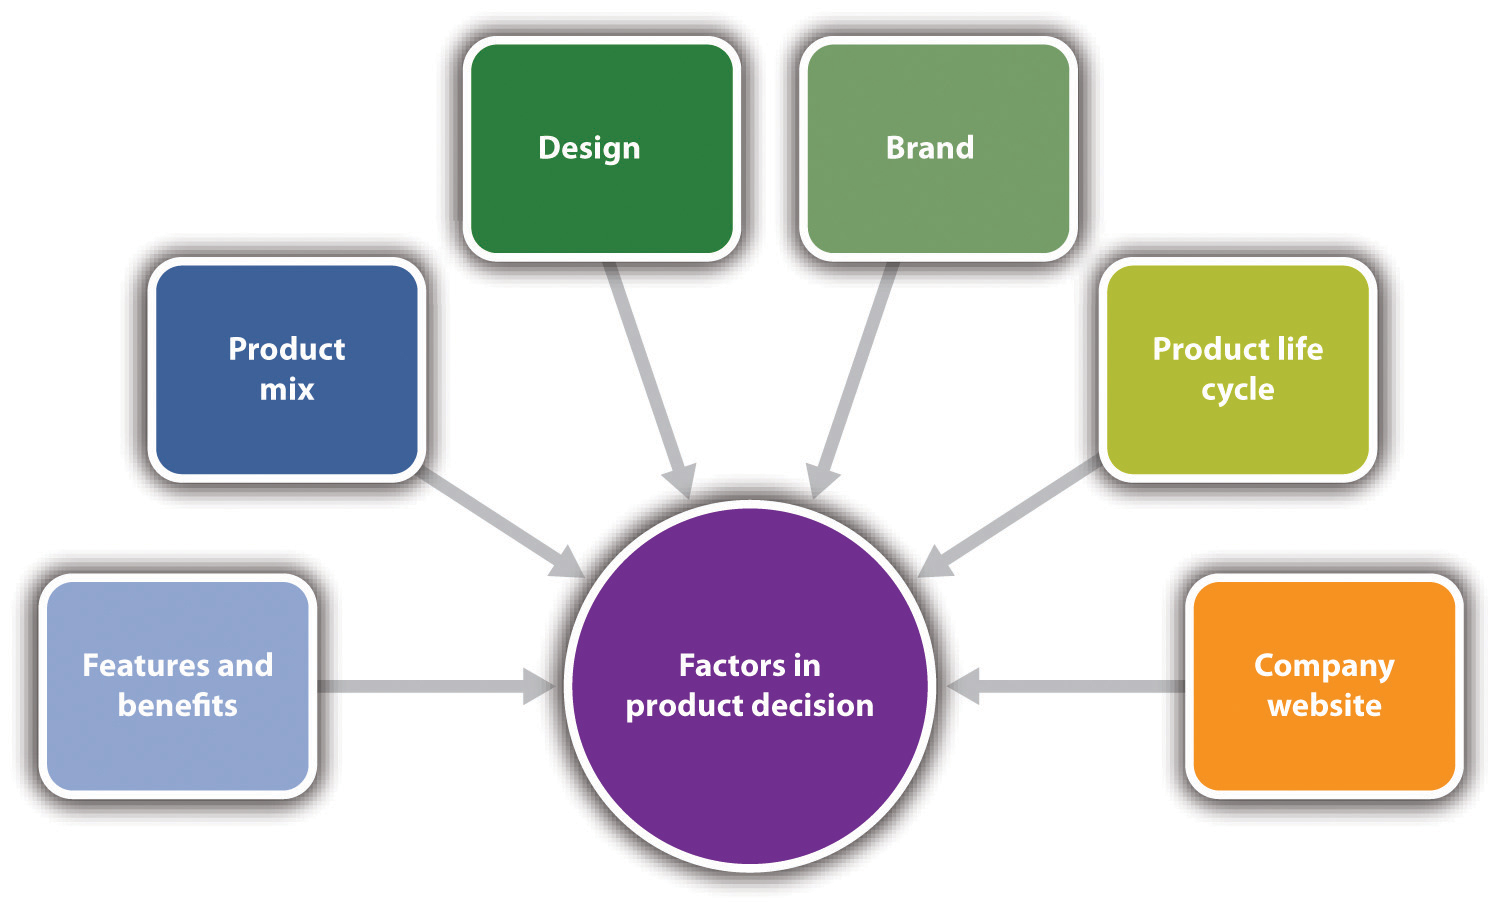 Marketing strategy and product for Product design business